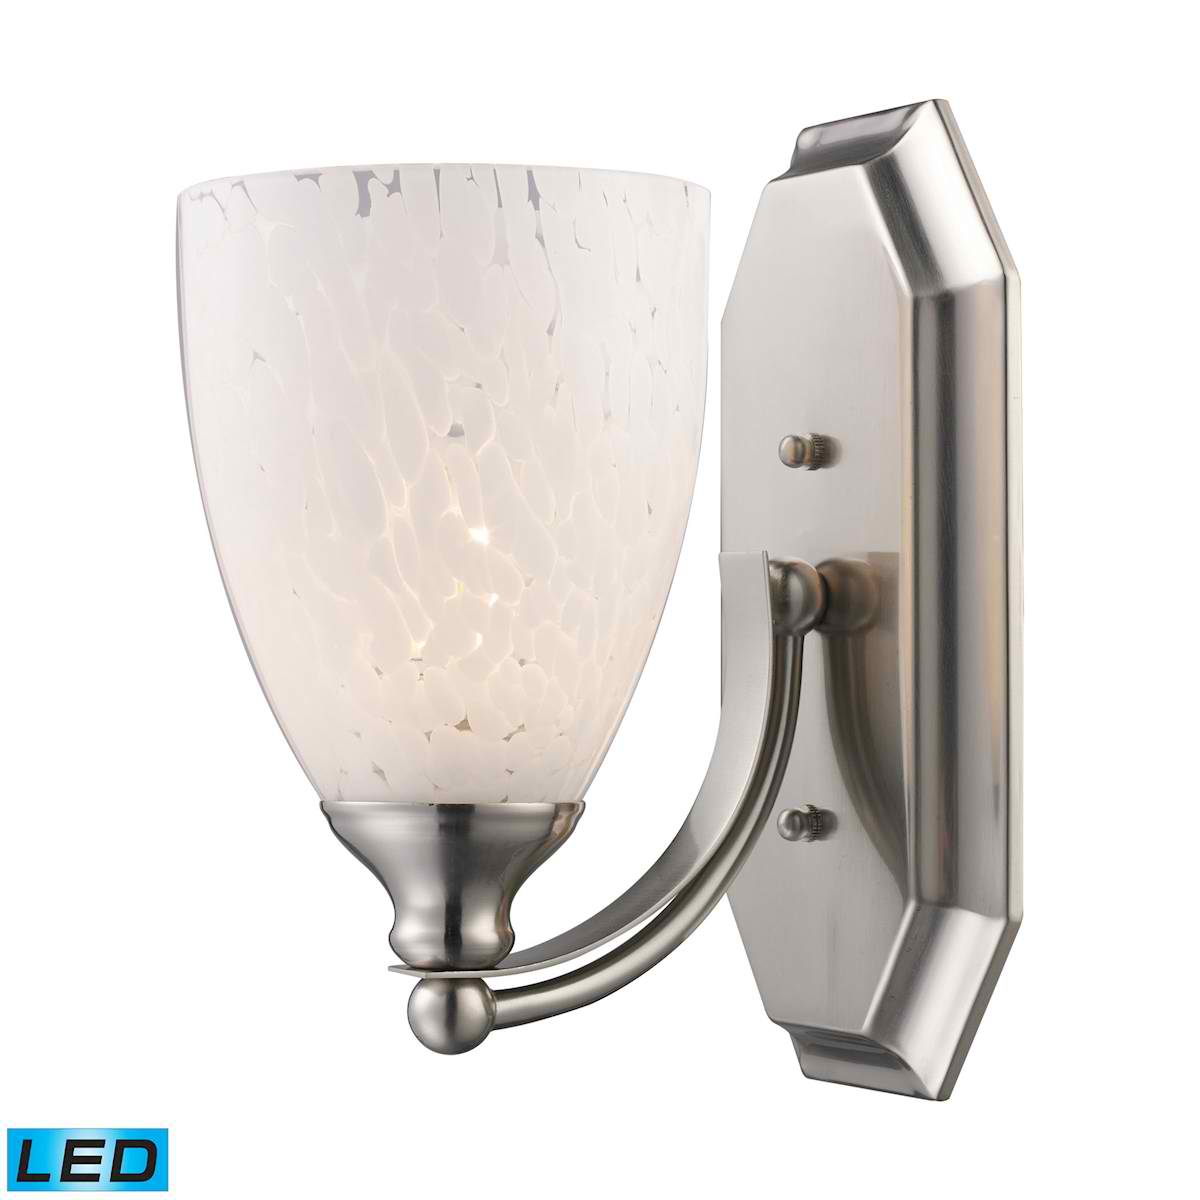 1 Light Vanity in Satin Nickel and Snow White Glass - LED Offering Up To 800 Lumens (60 Watt Equivalent)